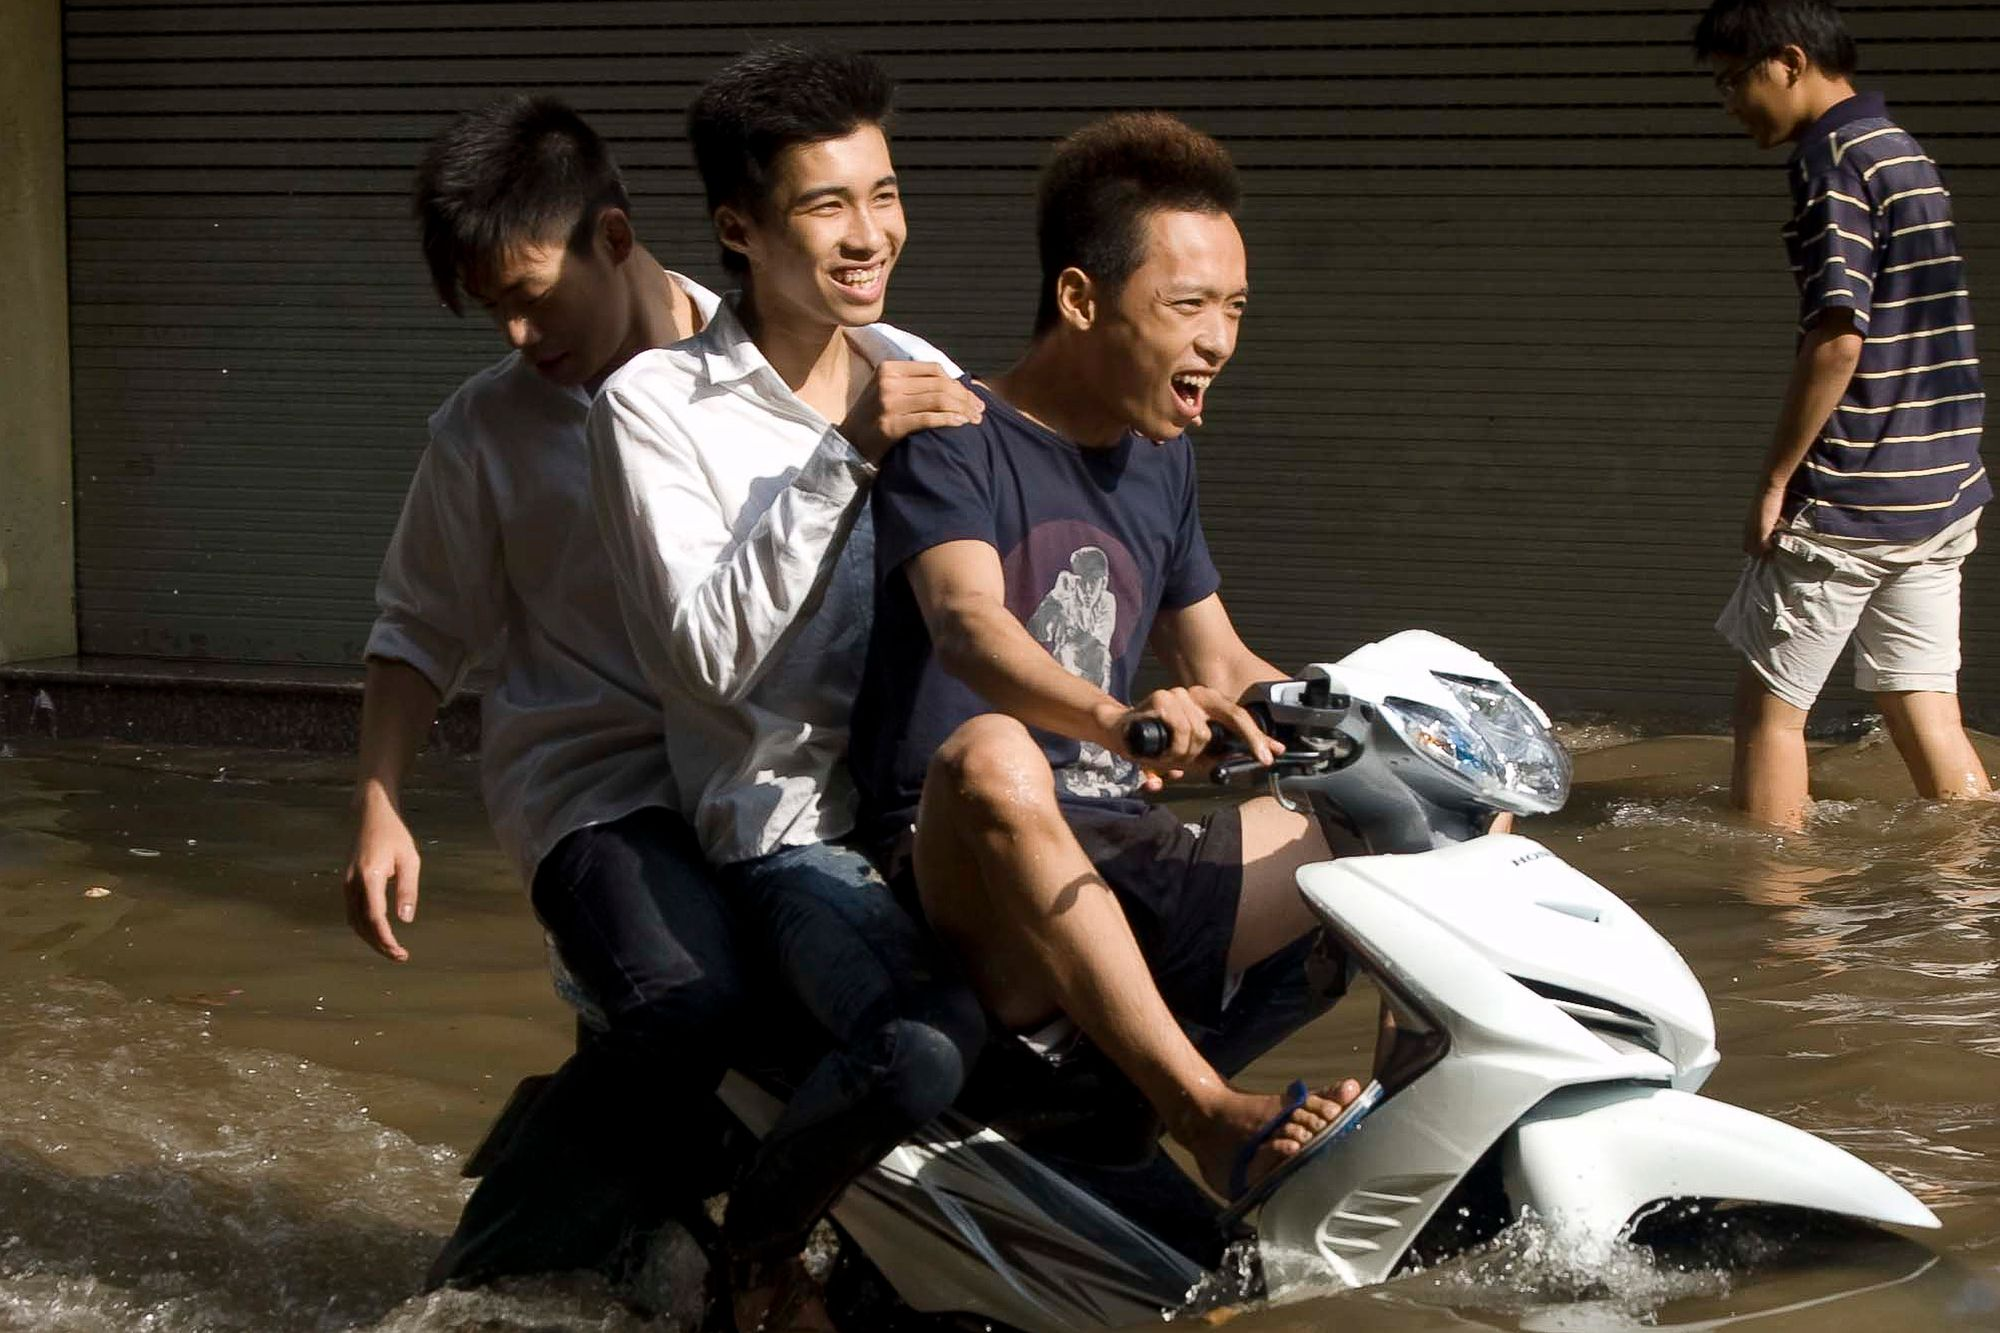 vietnam_haoi_flood_motorbike_fun.jpg